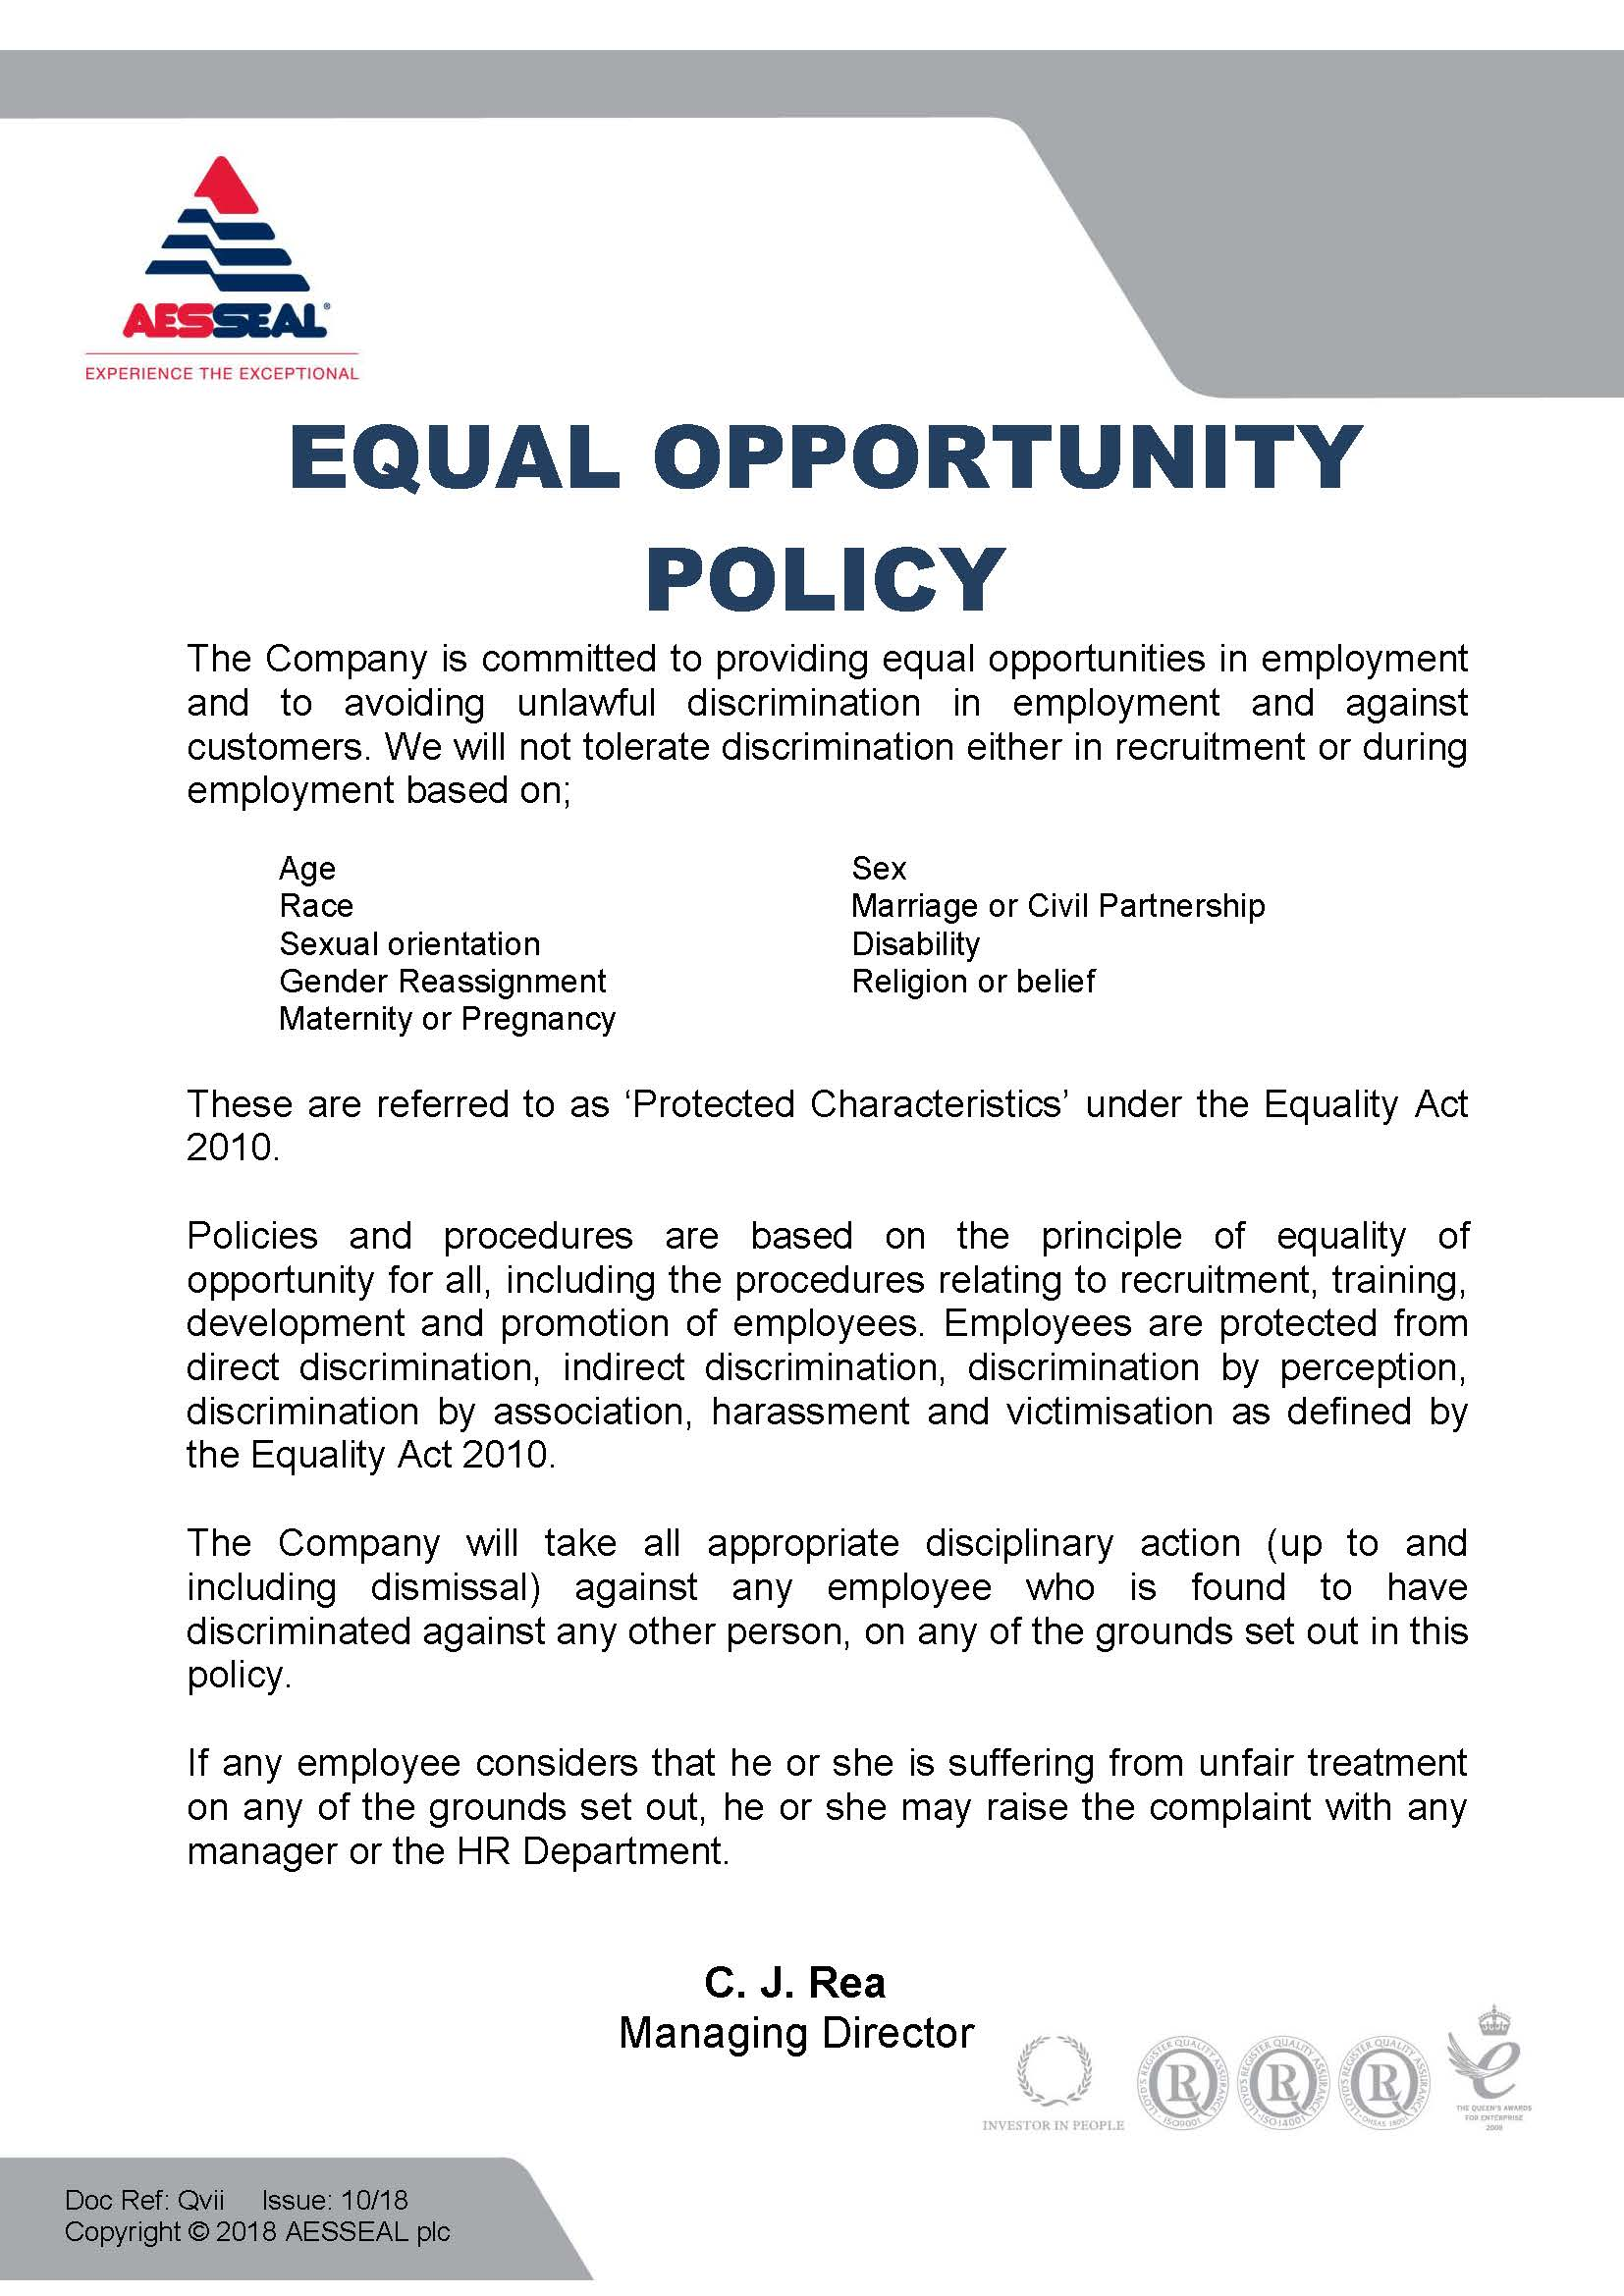 Equal Opportunity Policy